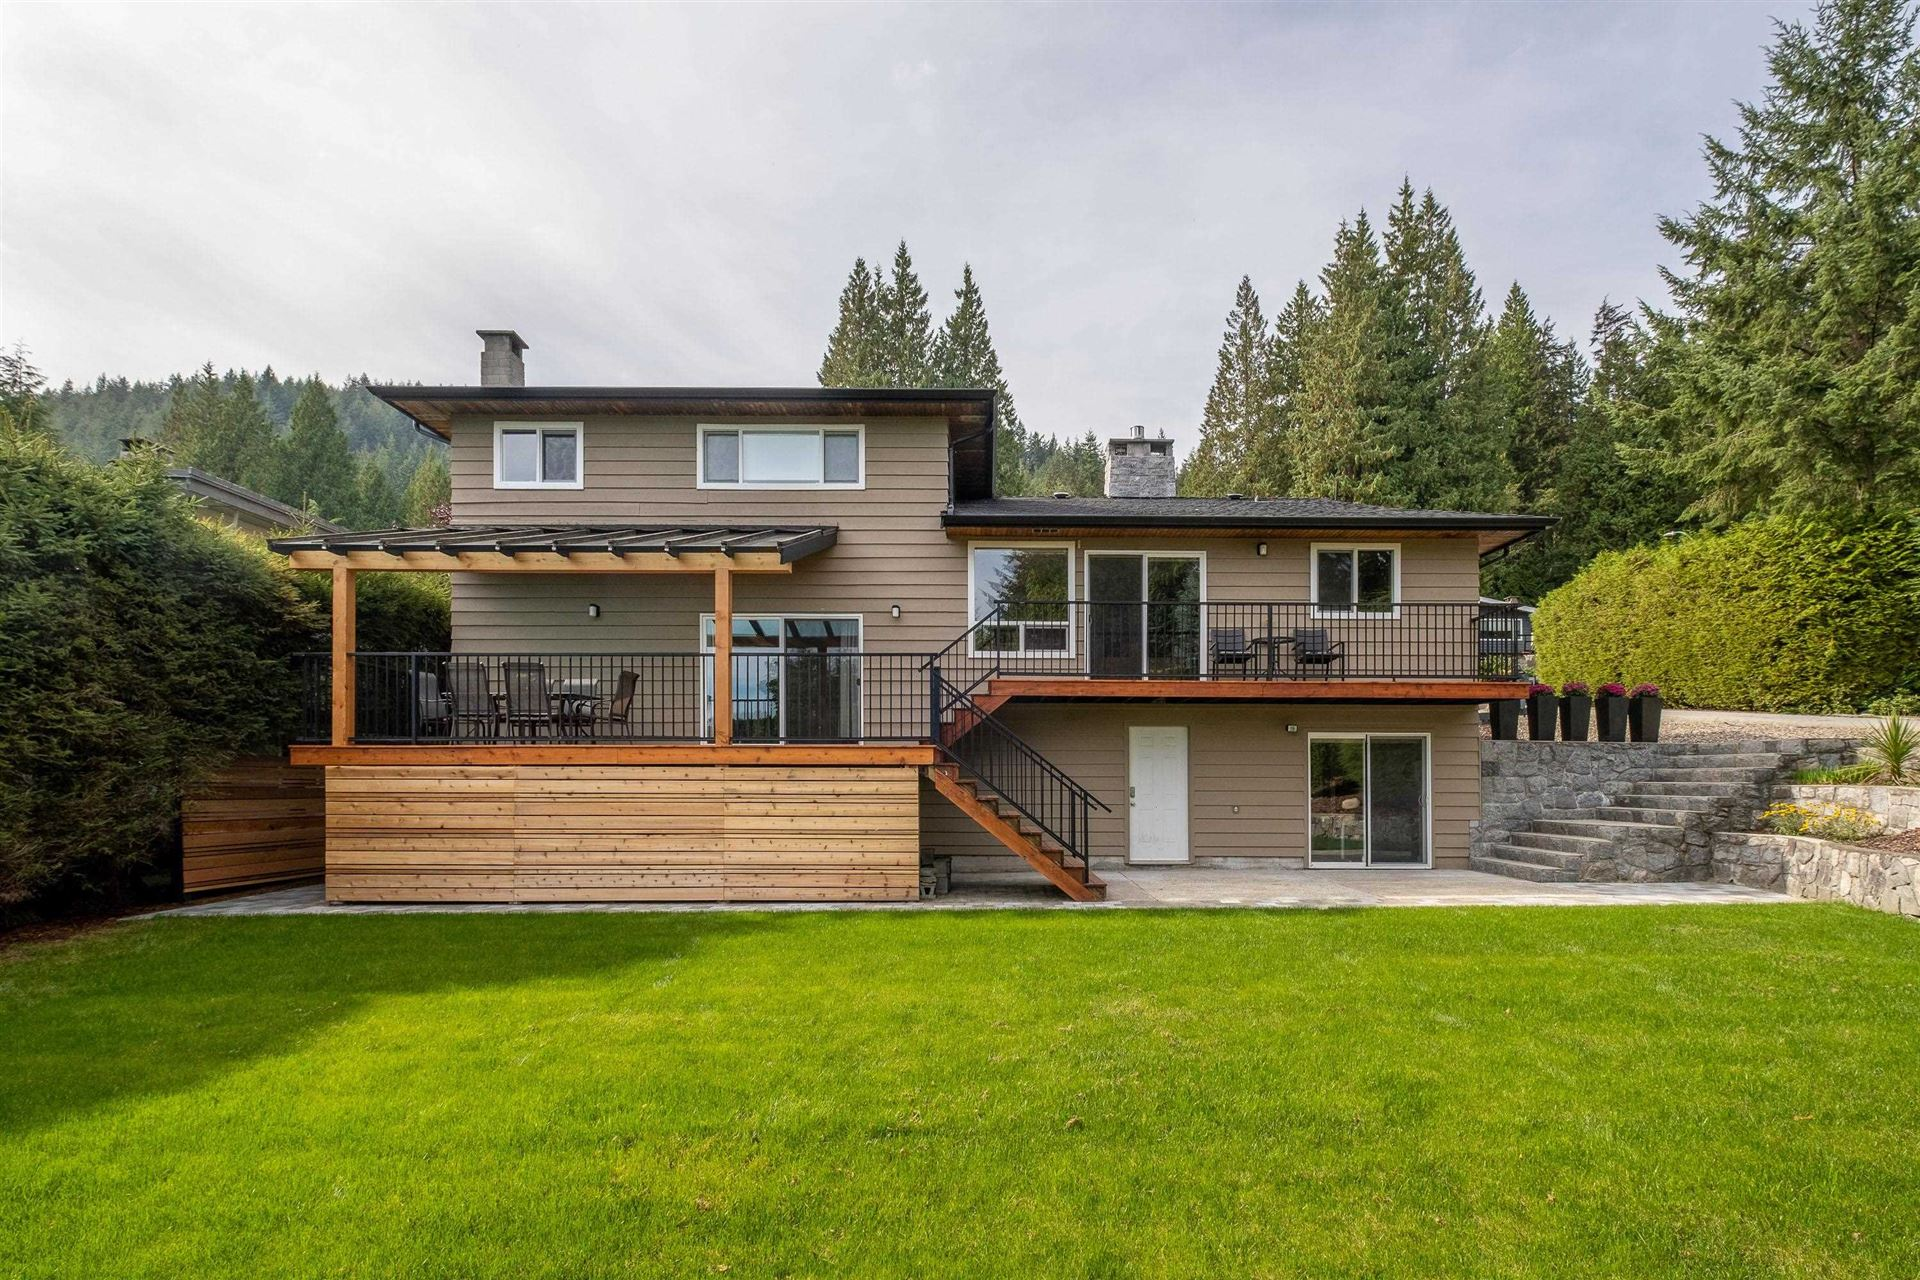 Photo of 4766 TOURNEY ROAD, North Vancouver, BC V7K 2W4 (MLS # R2626033)